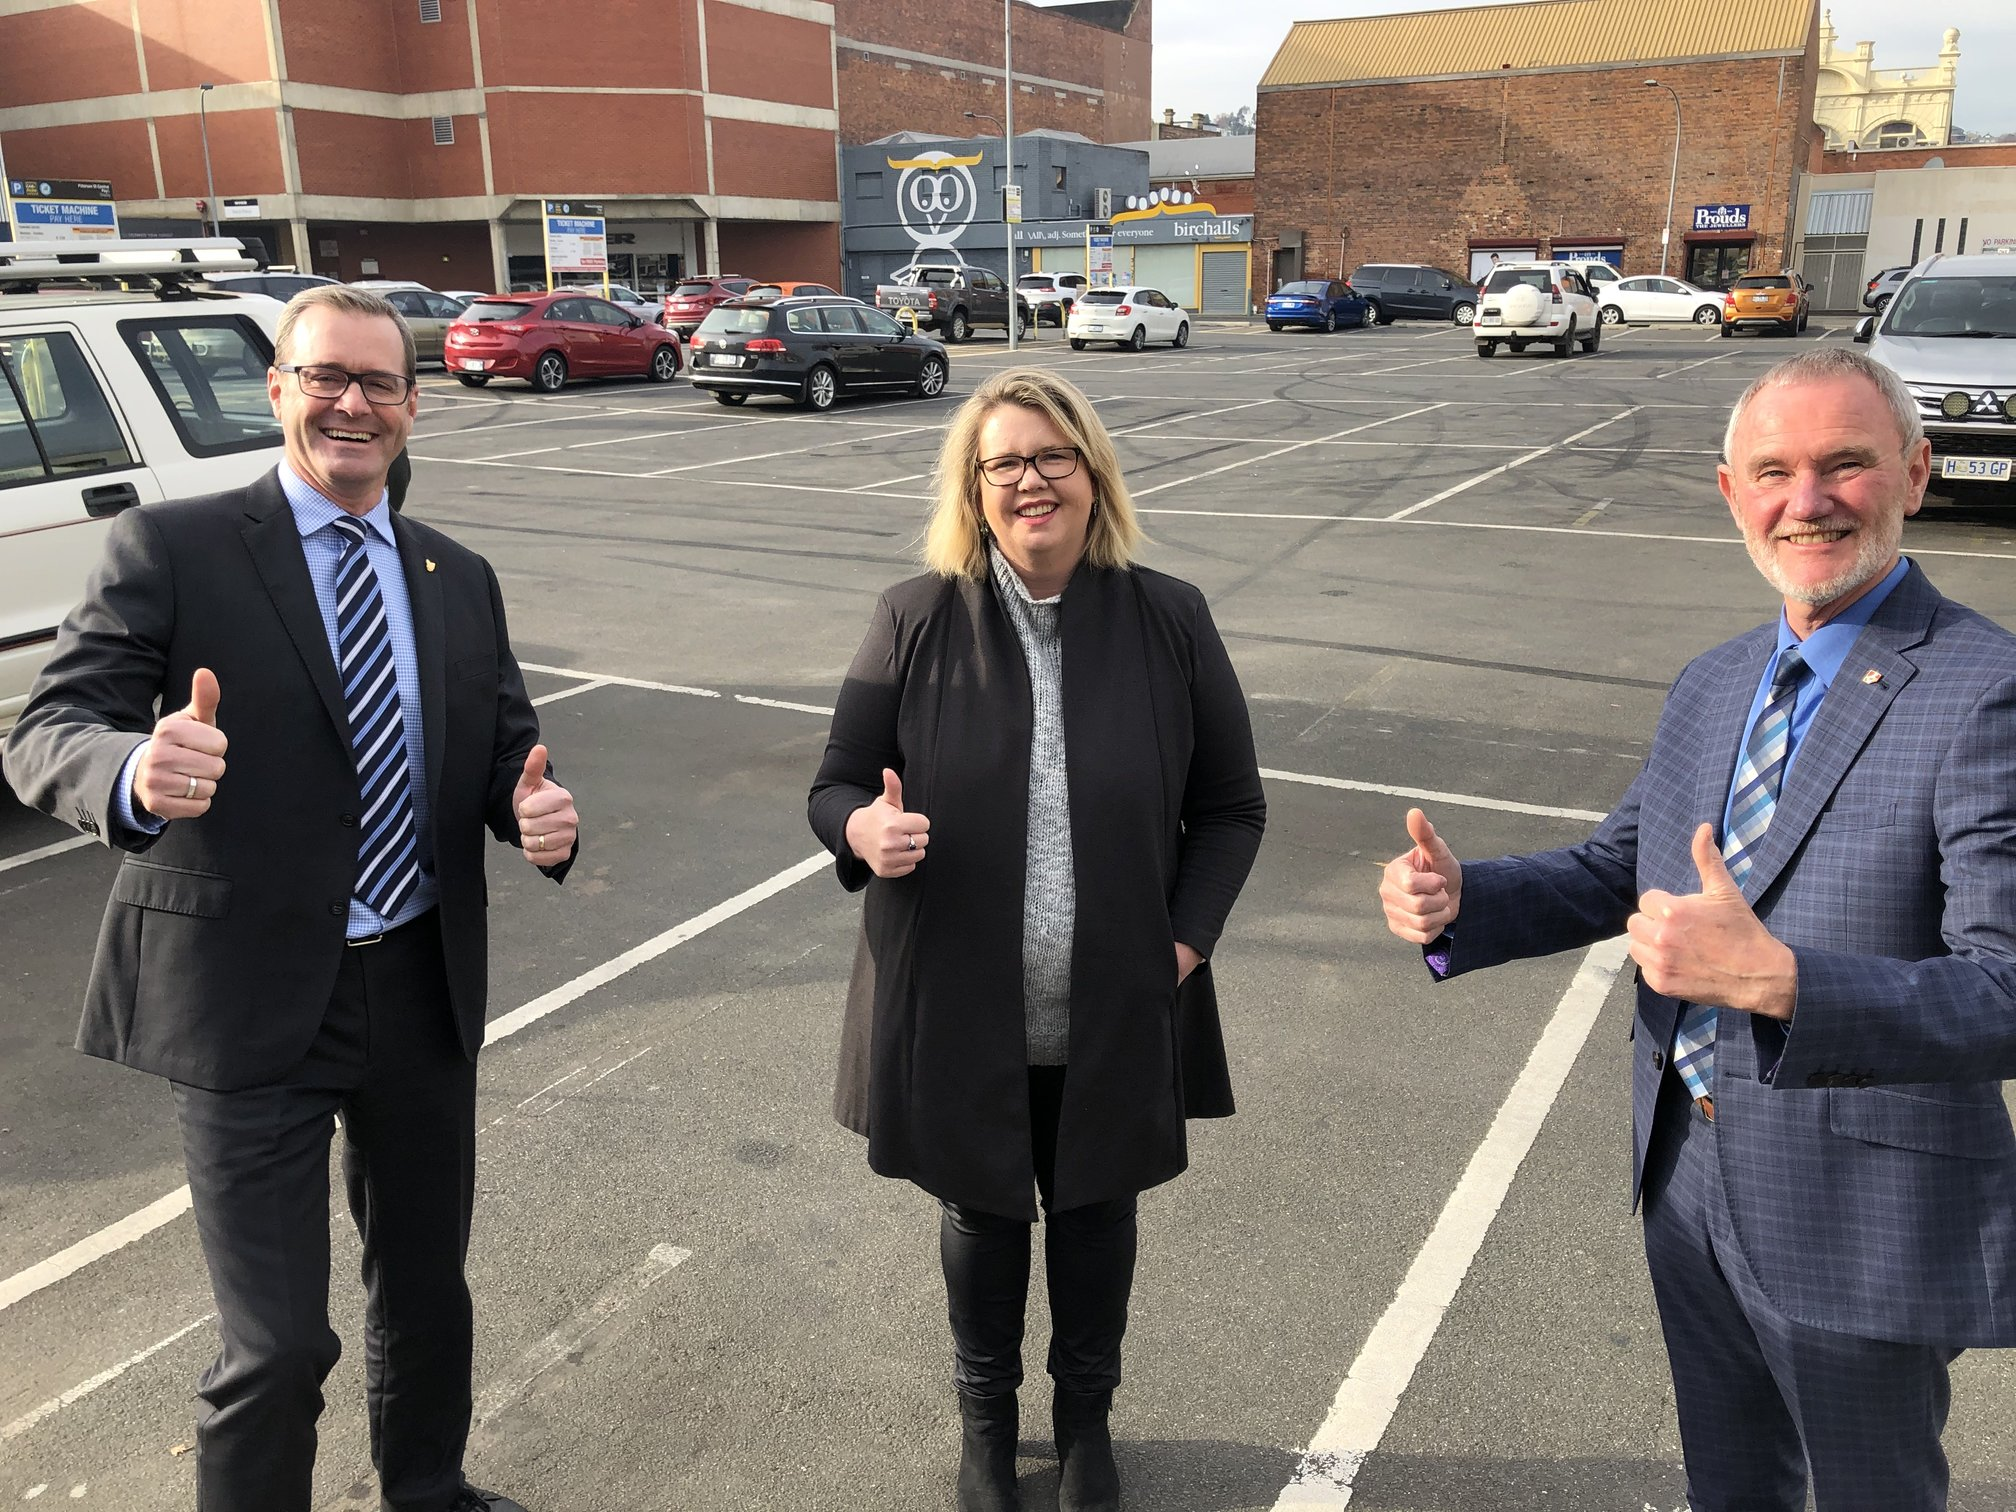 Public and private sector working together to deliver new bus interchange